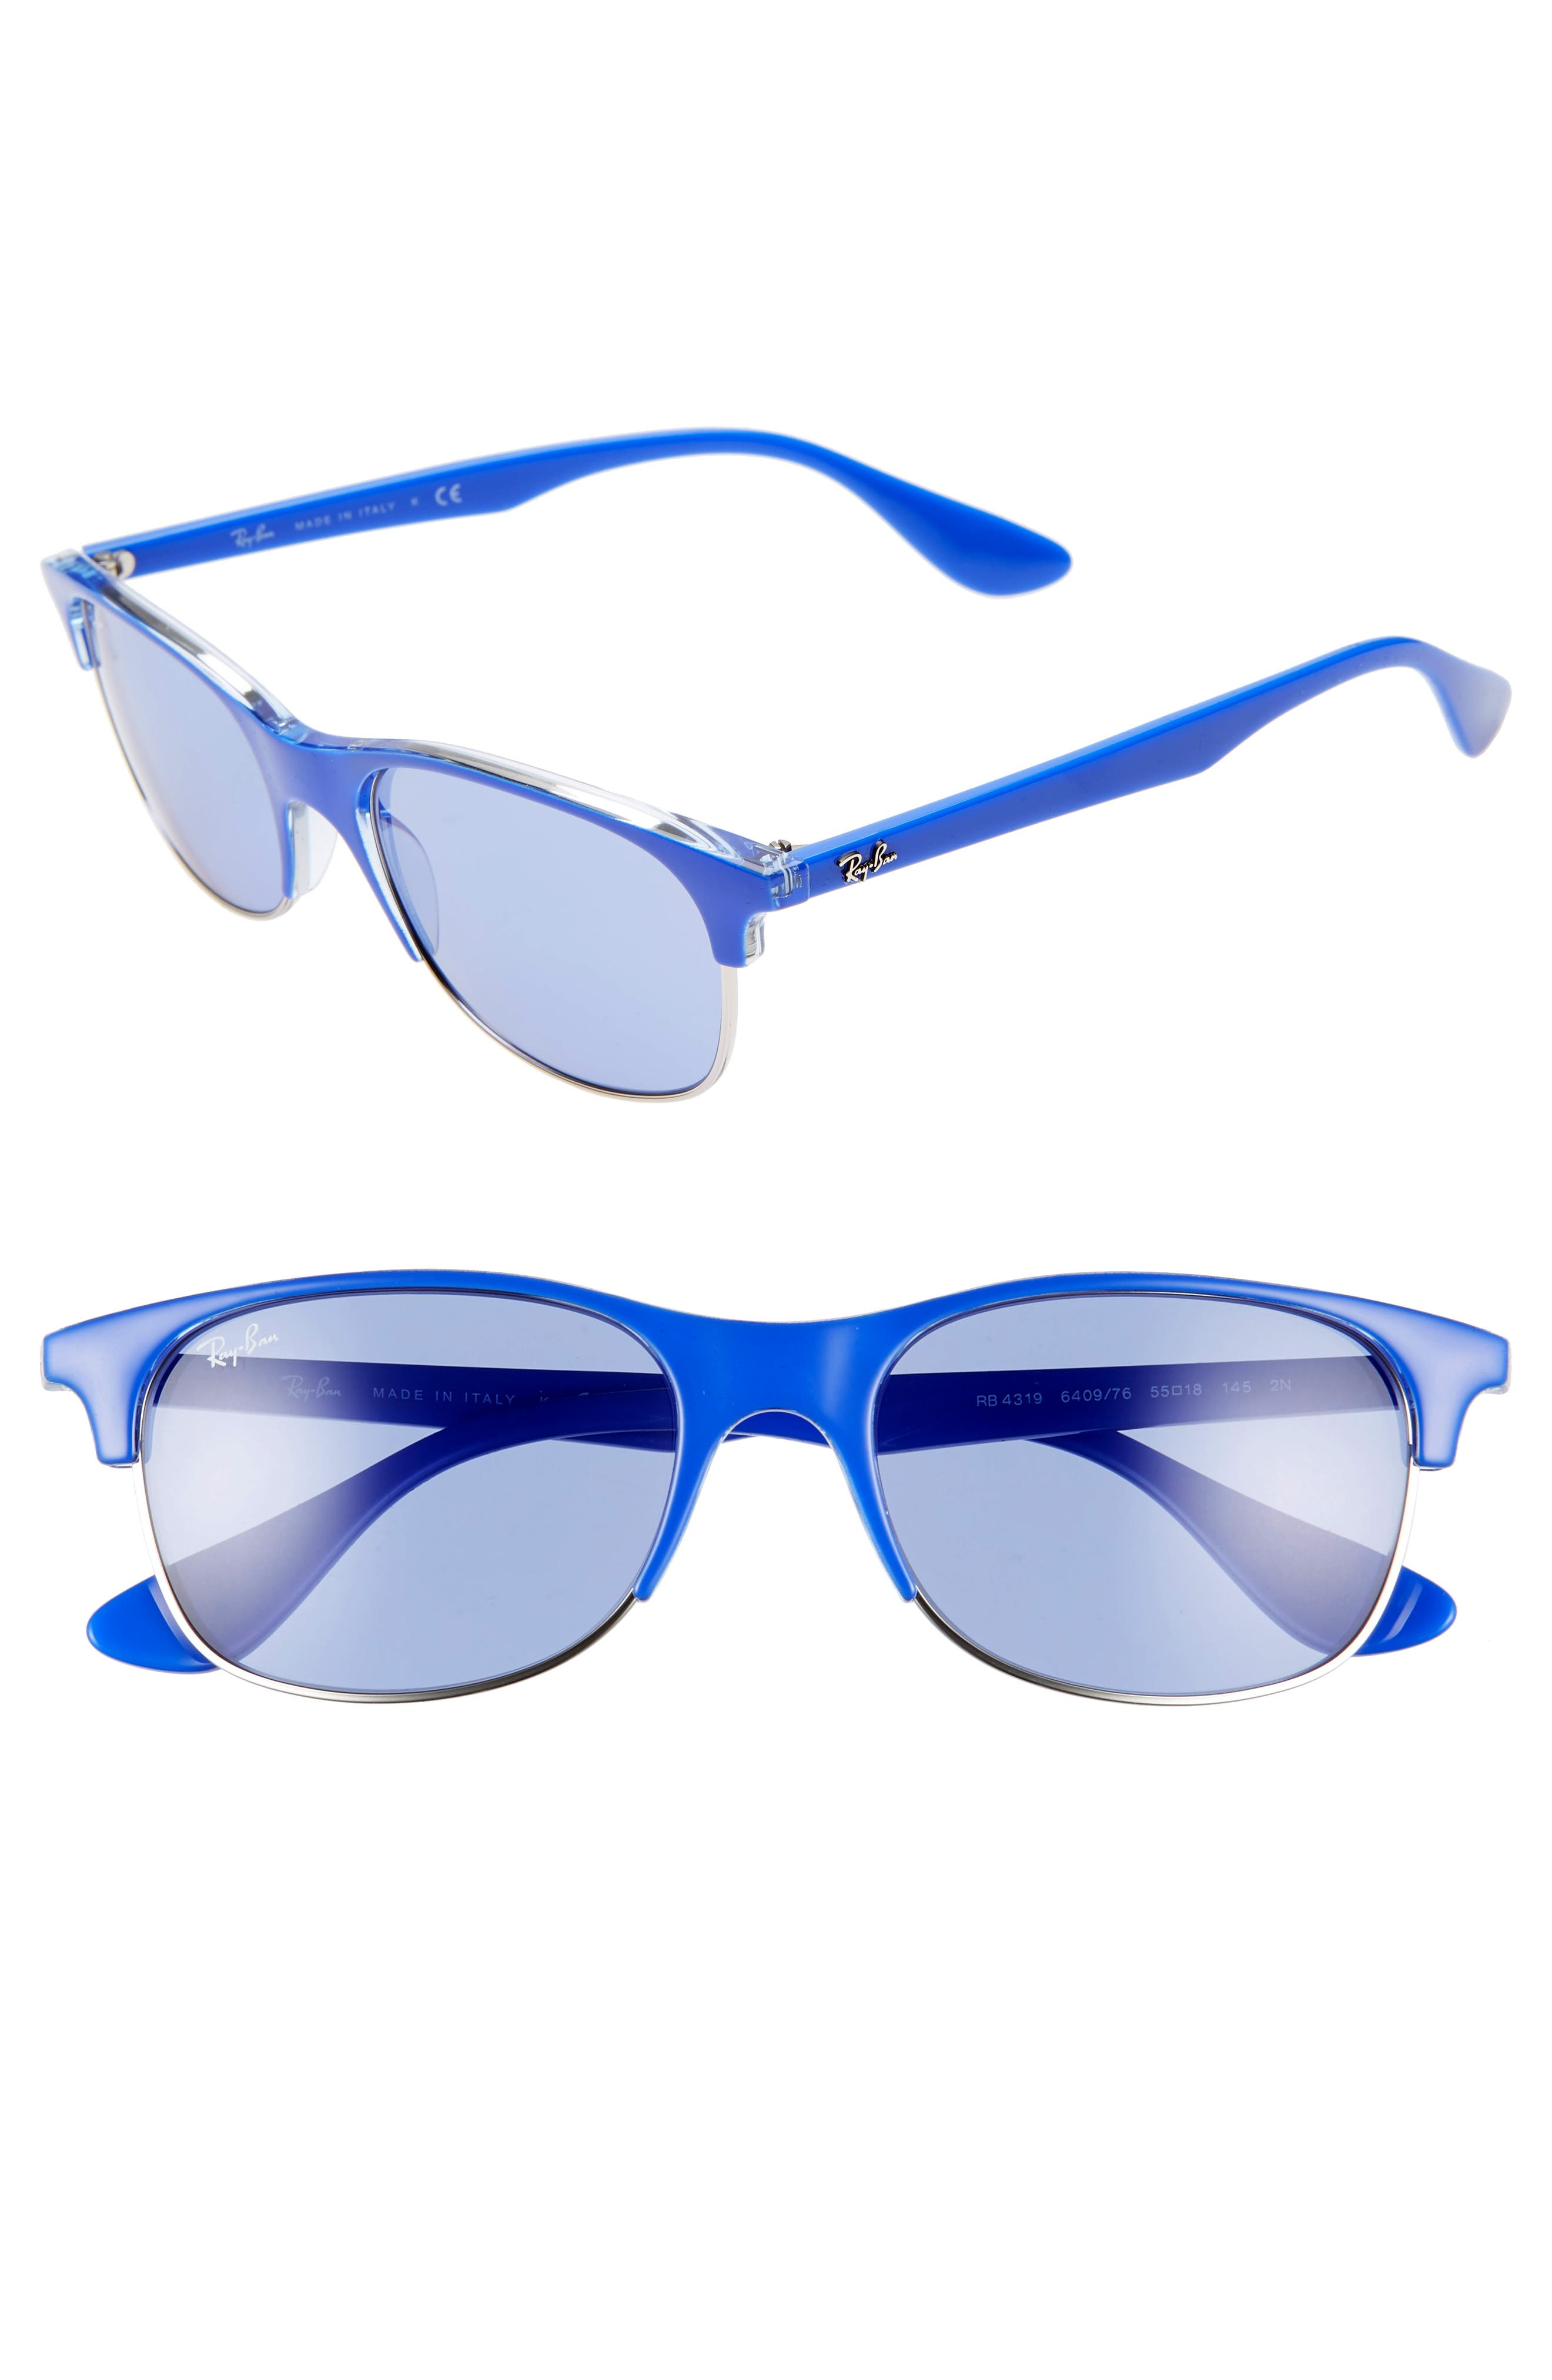 Ray-Ban 55Mm Sunglasses - Blue/ Light Blue Solid